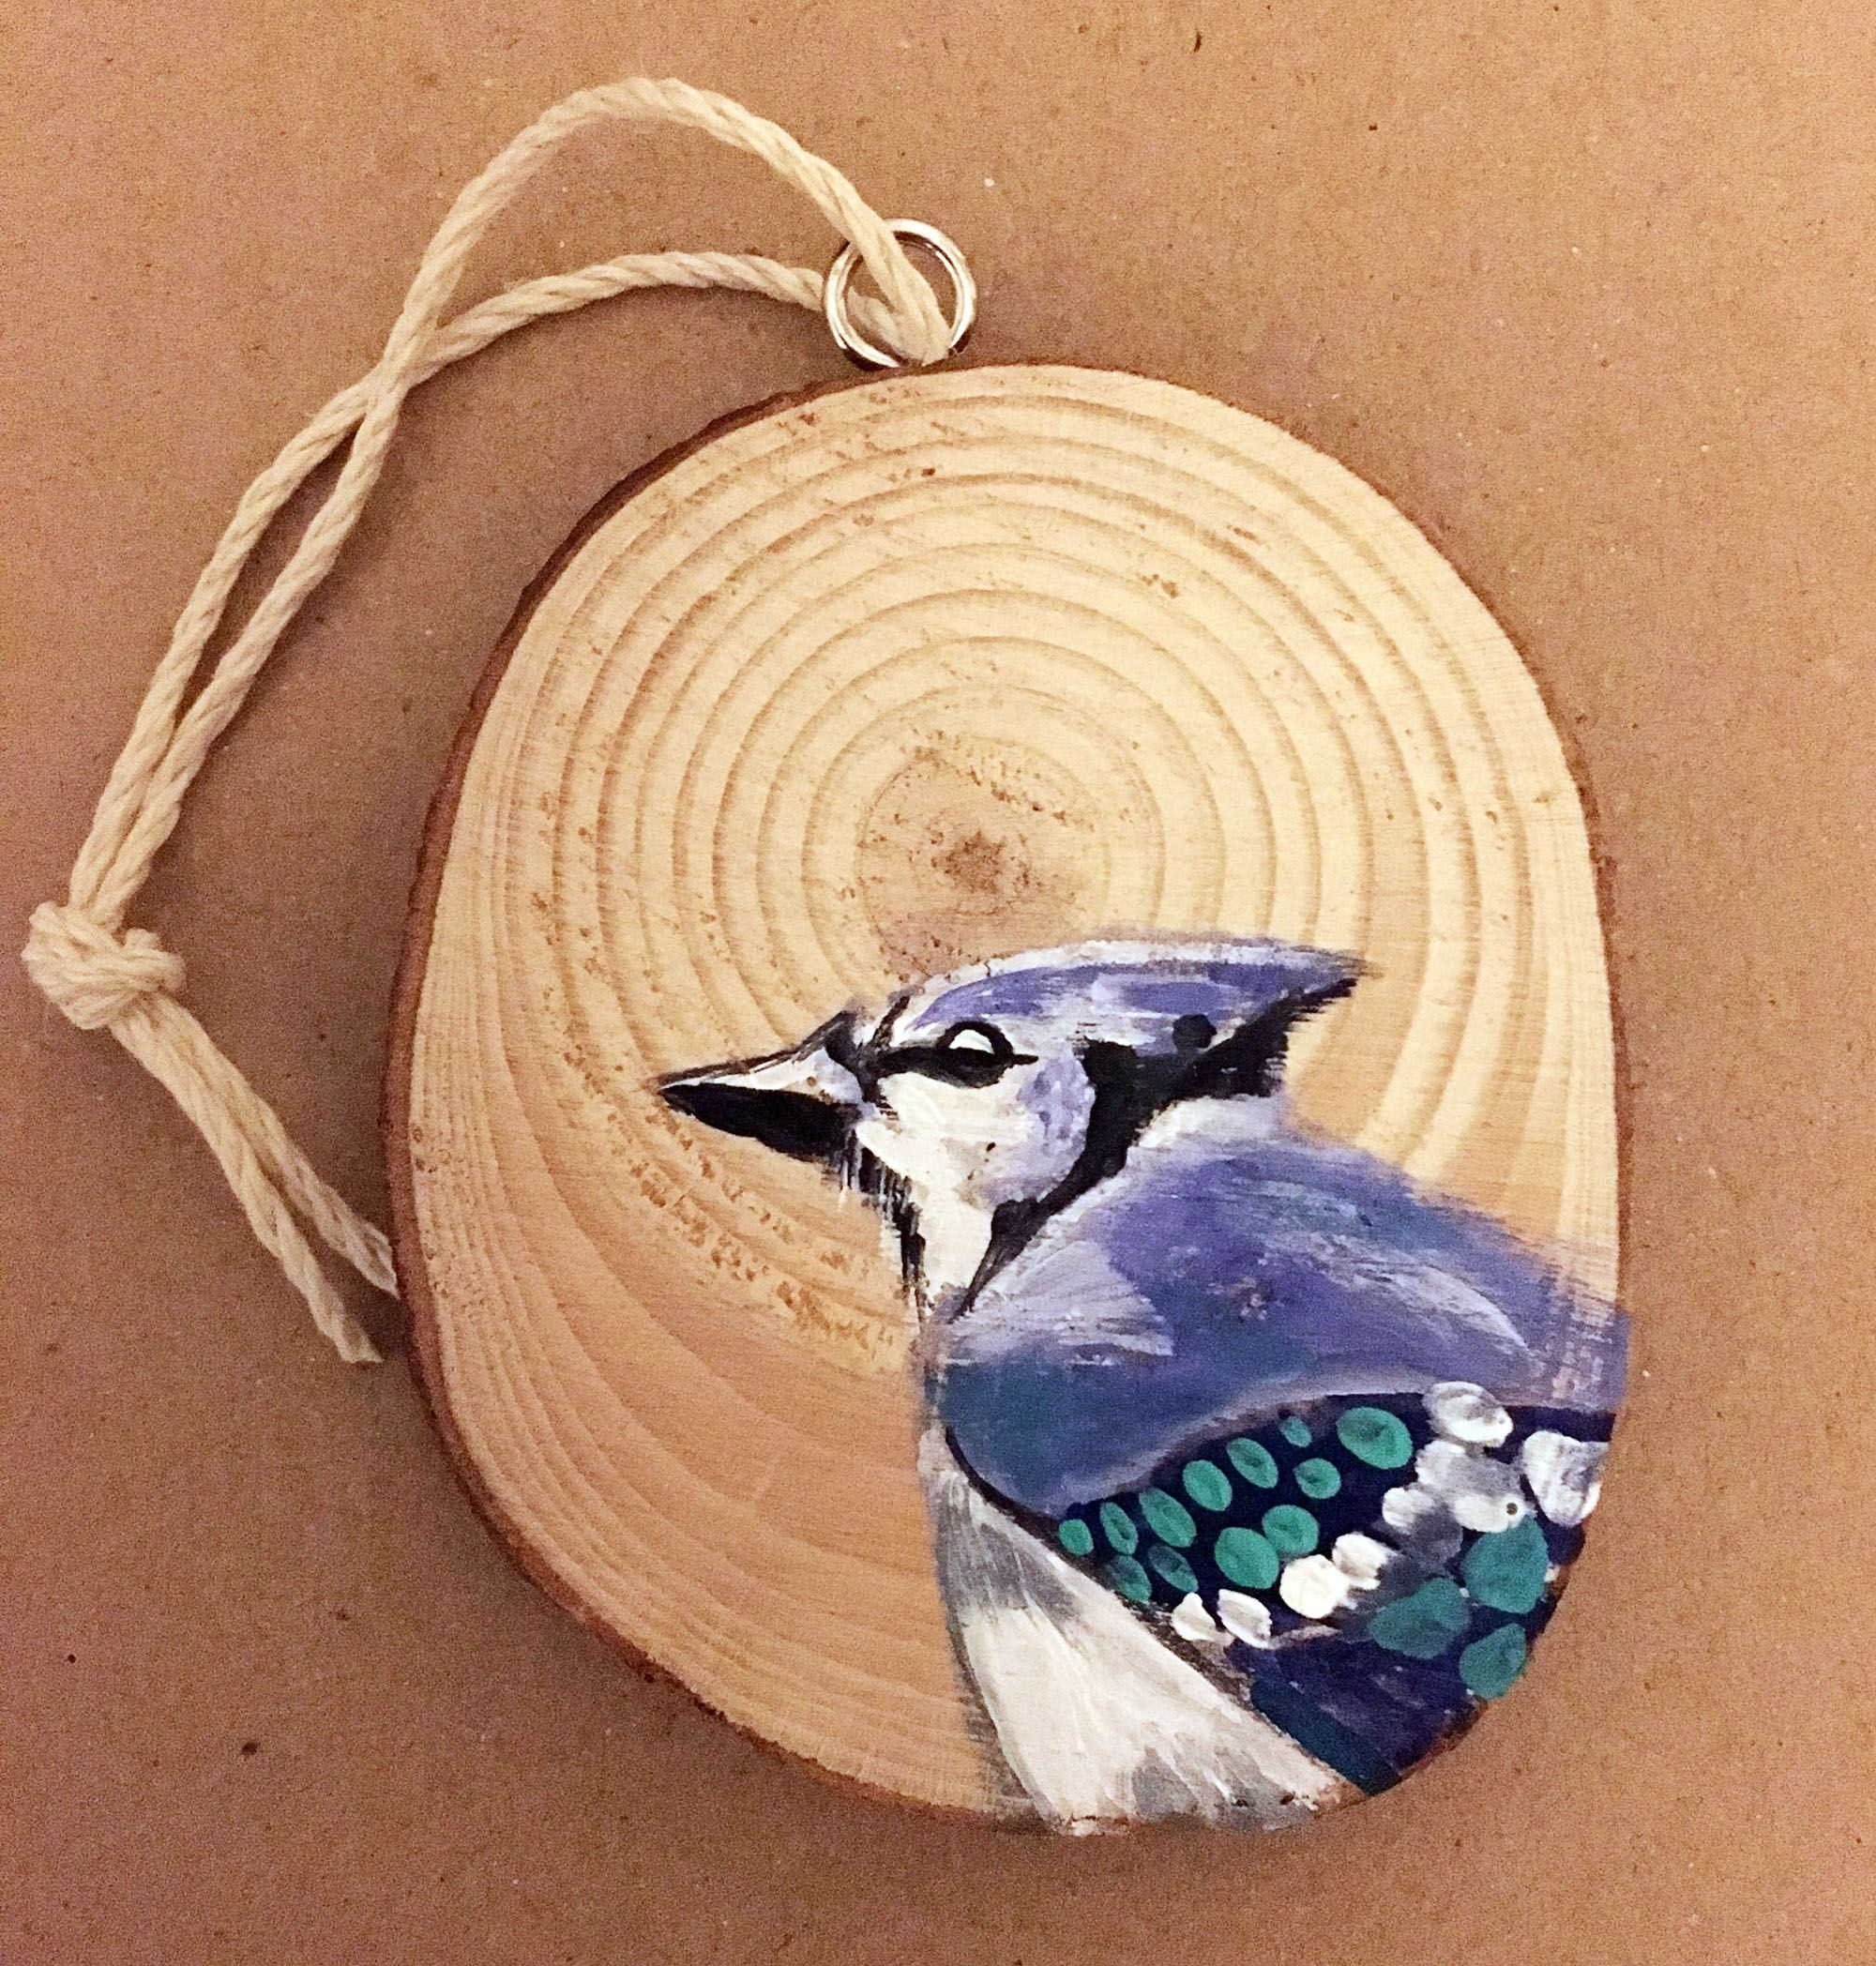 unique decor ornament present bird bluejay christmas ornaments handmade wood slice